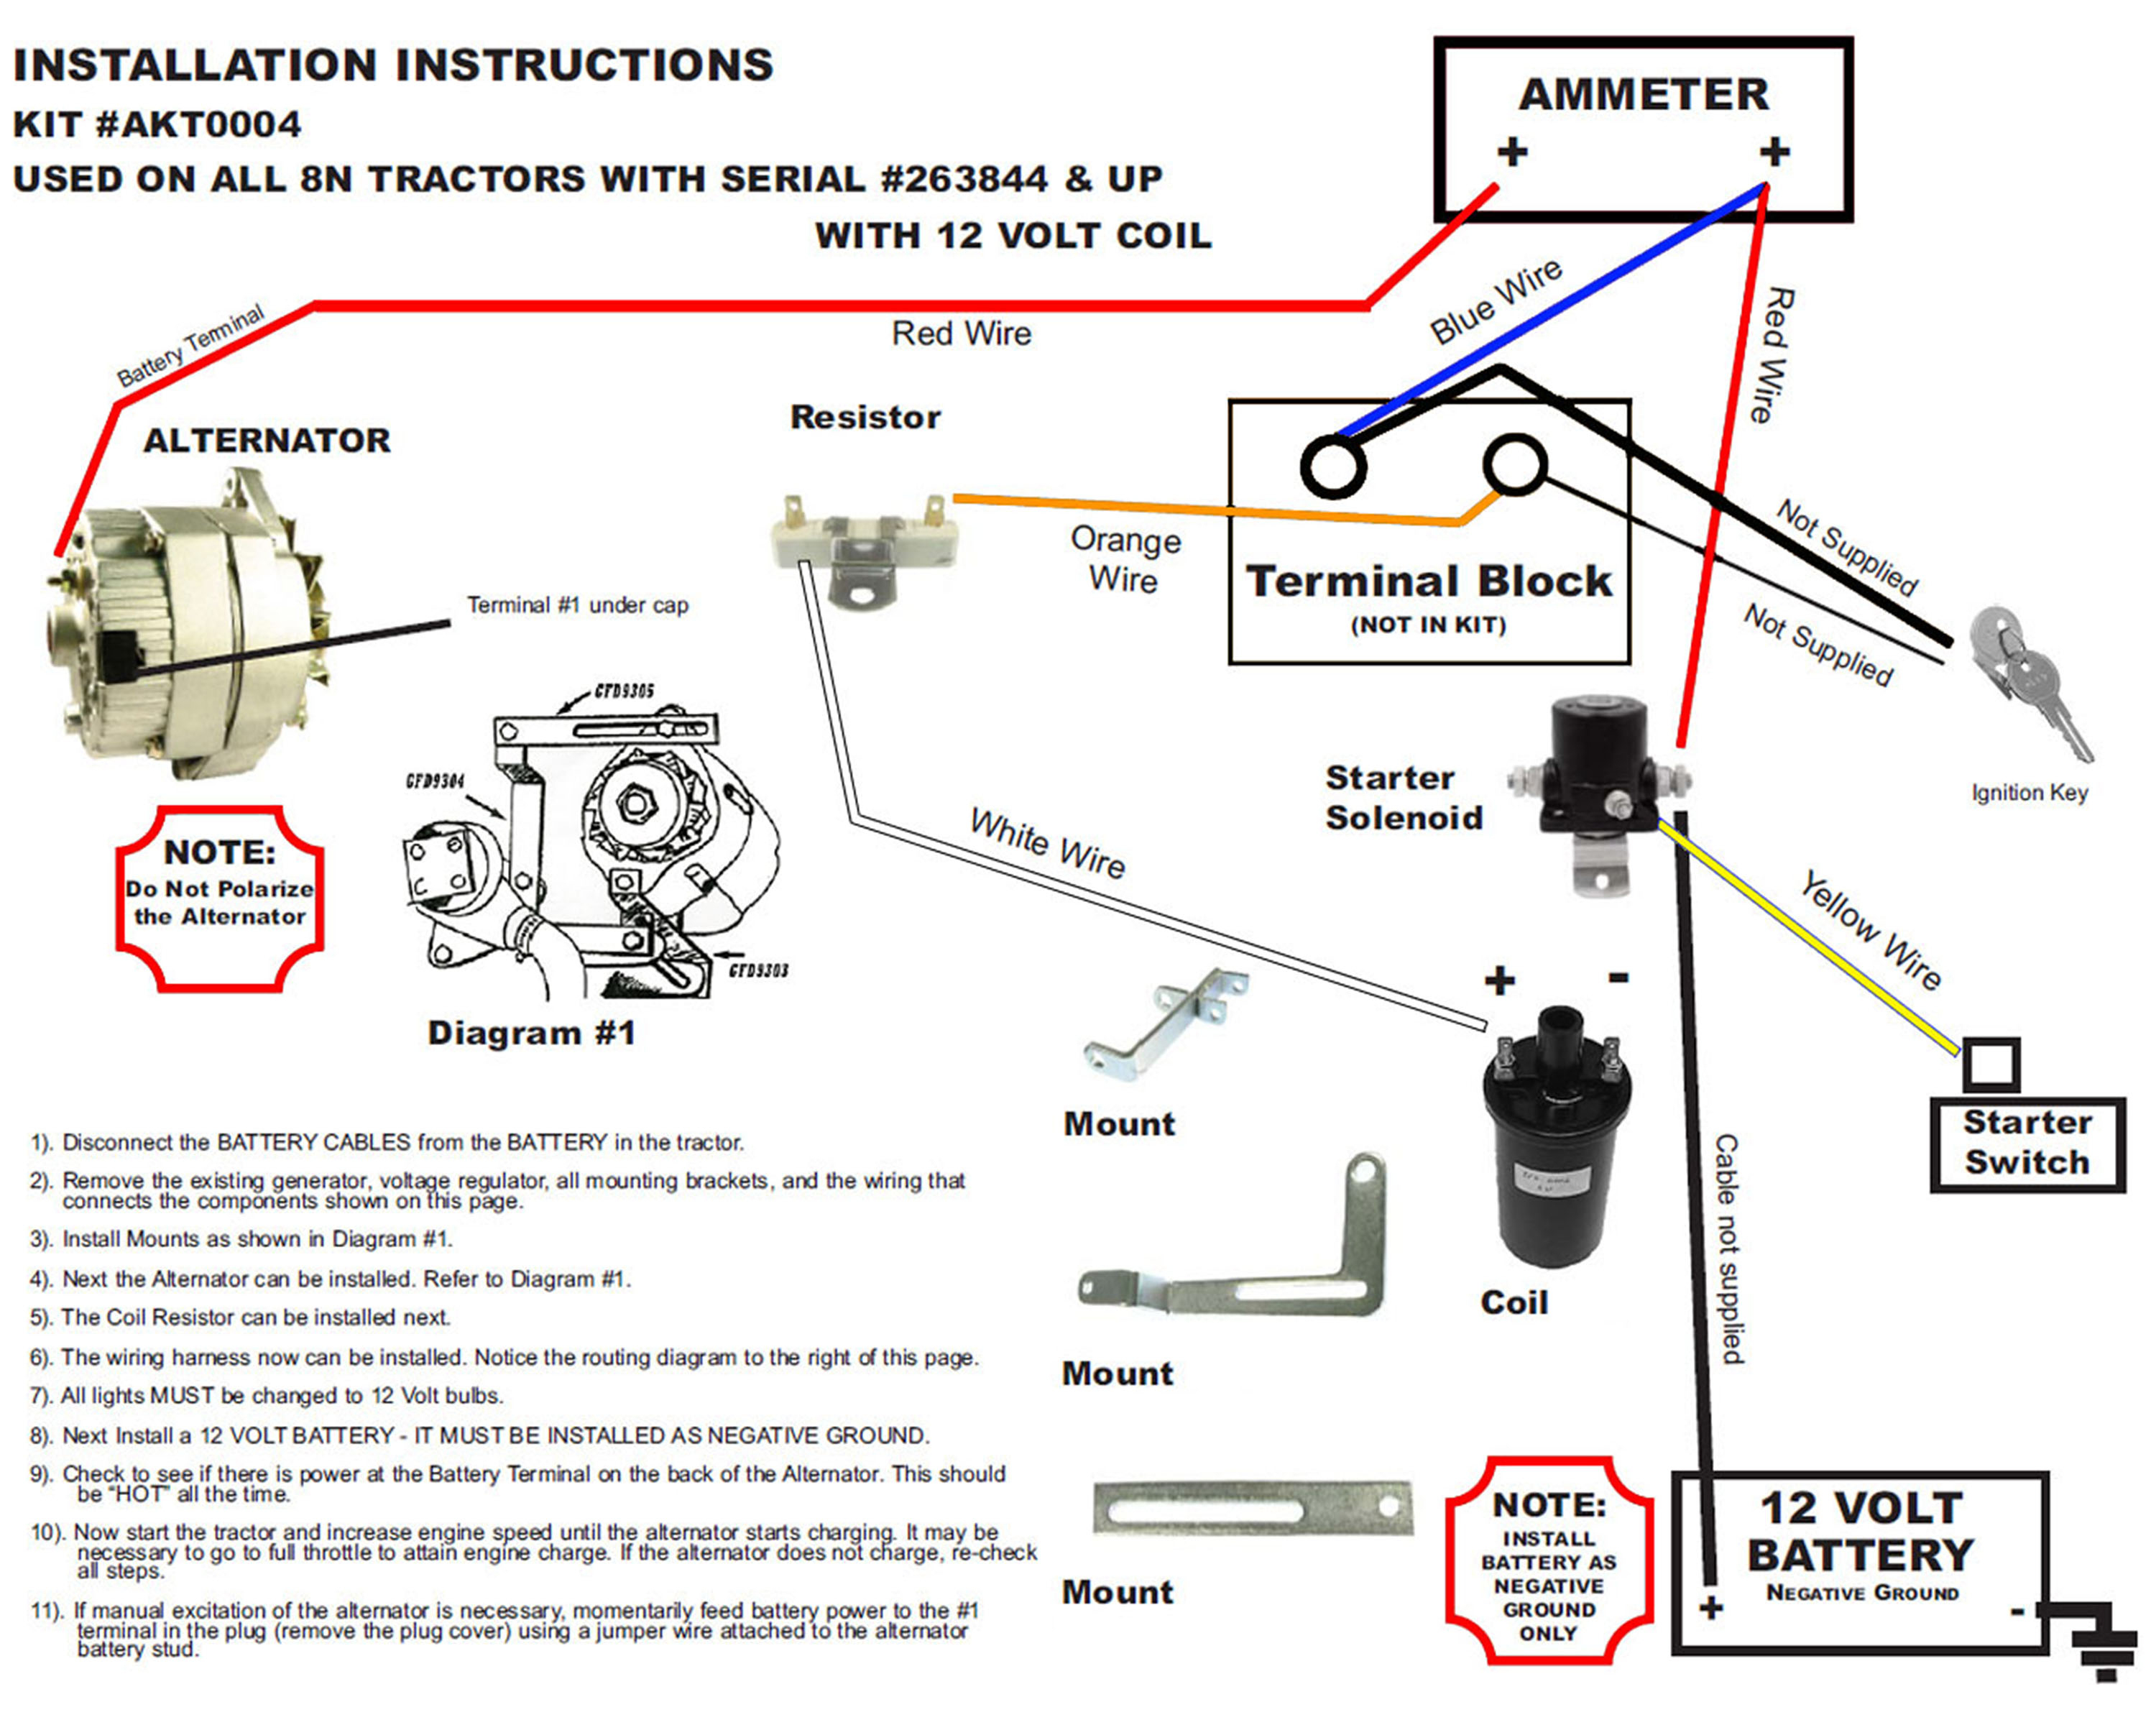 Ford 8N Alternator Conversion Diagram - Wiring Diagrams Hubs - 8N Ford Tractor Wiring Diagram